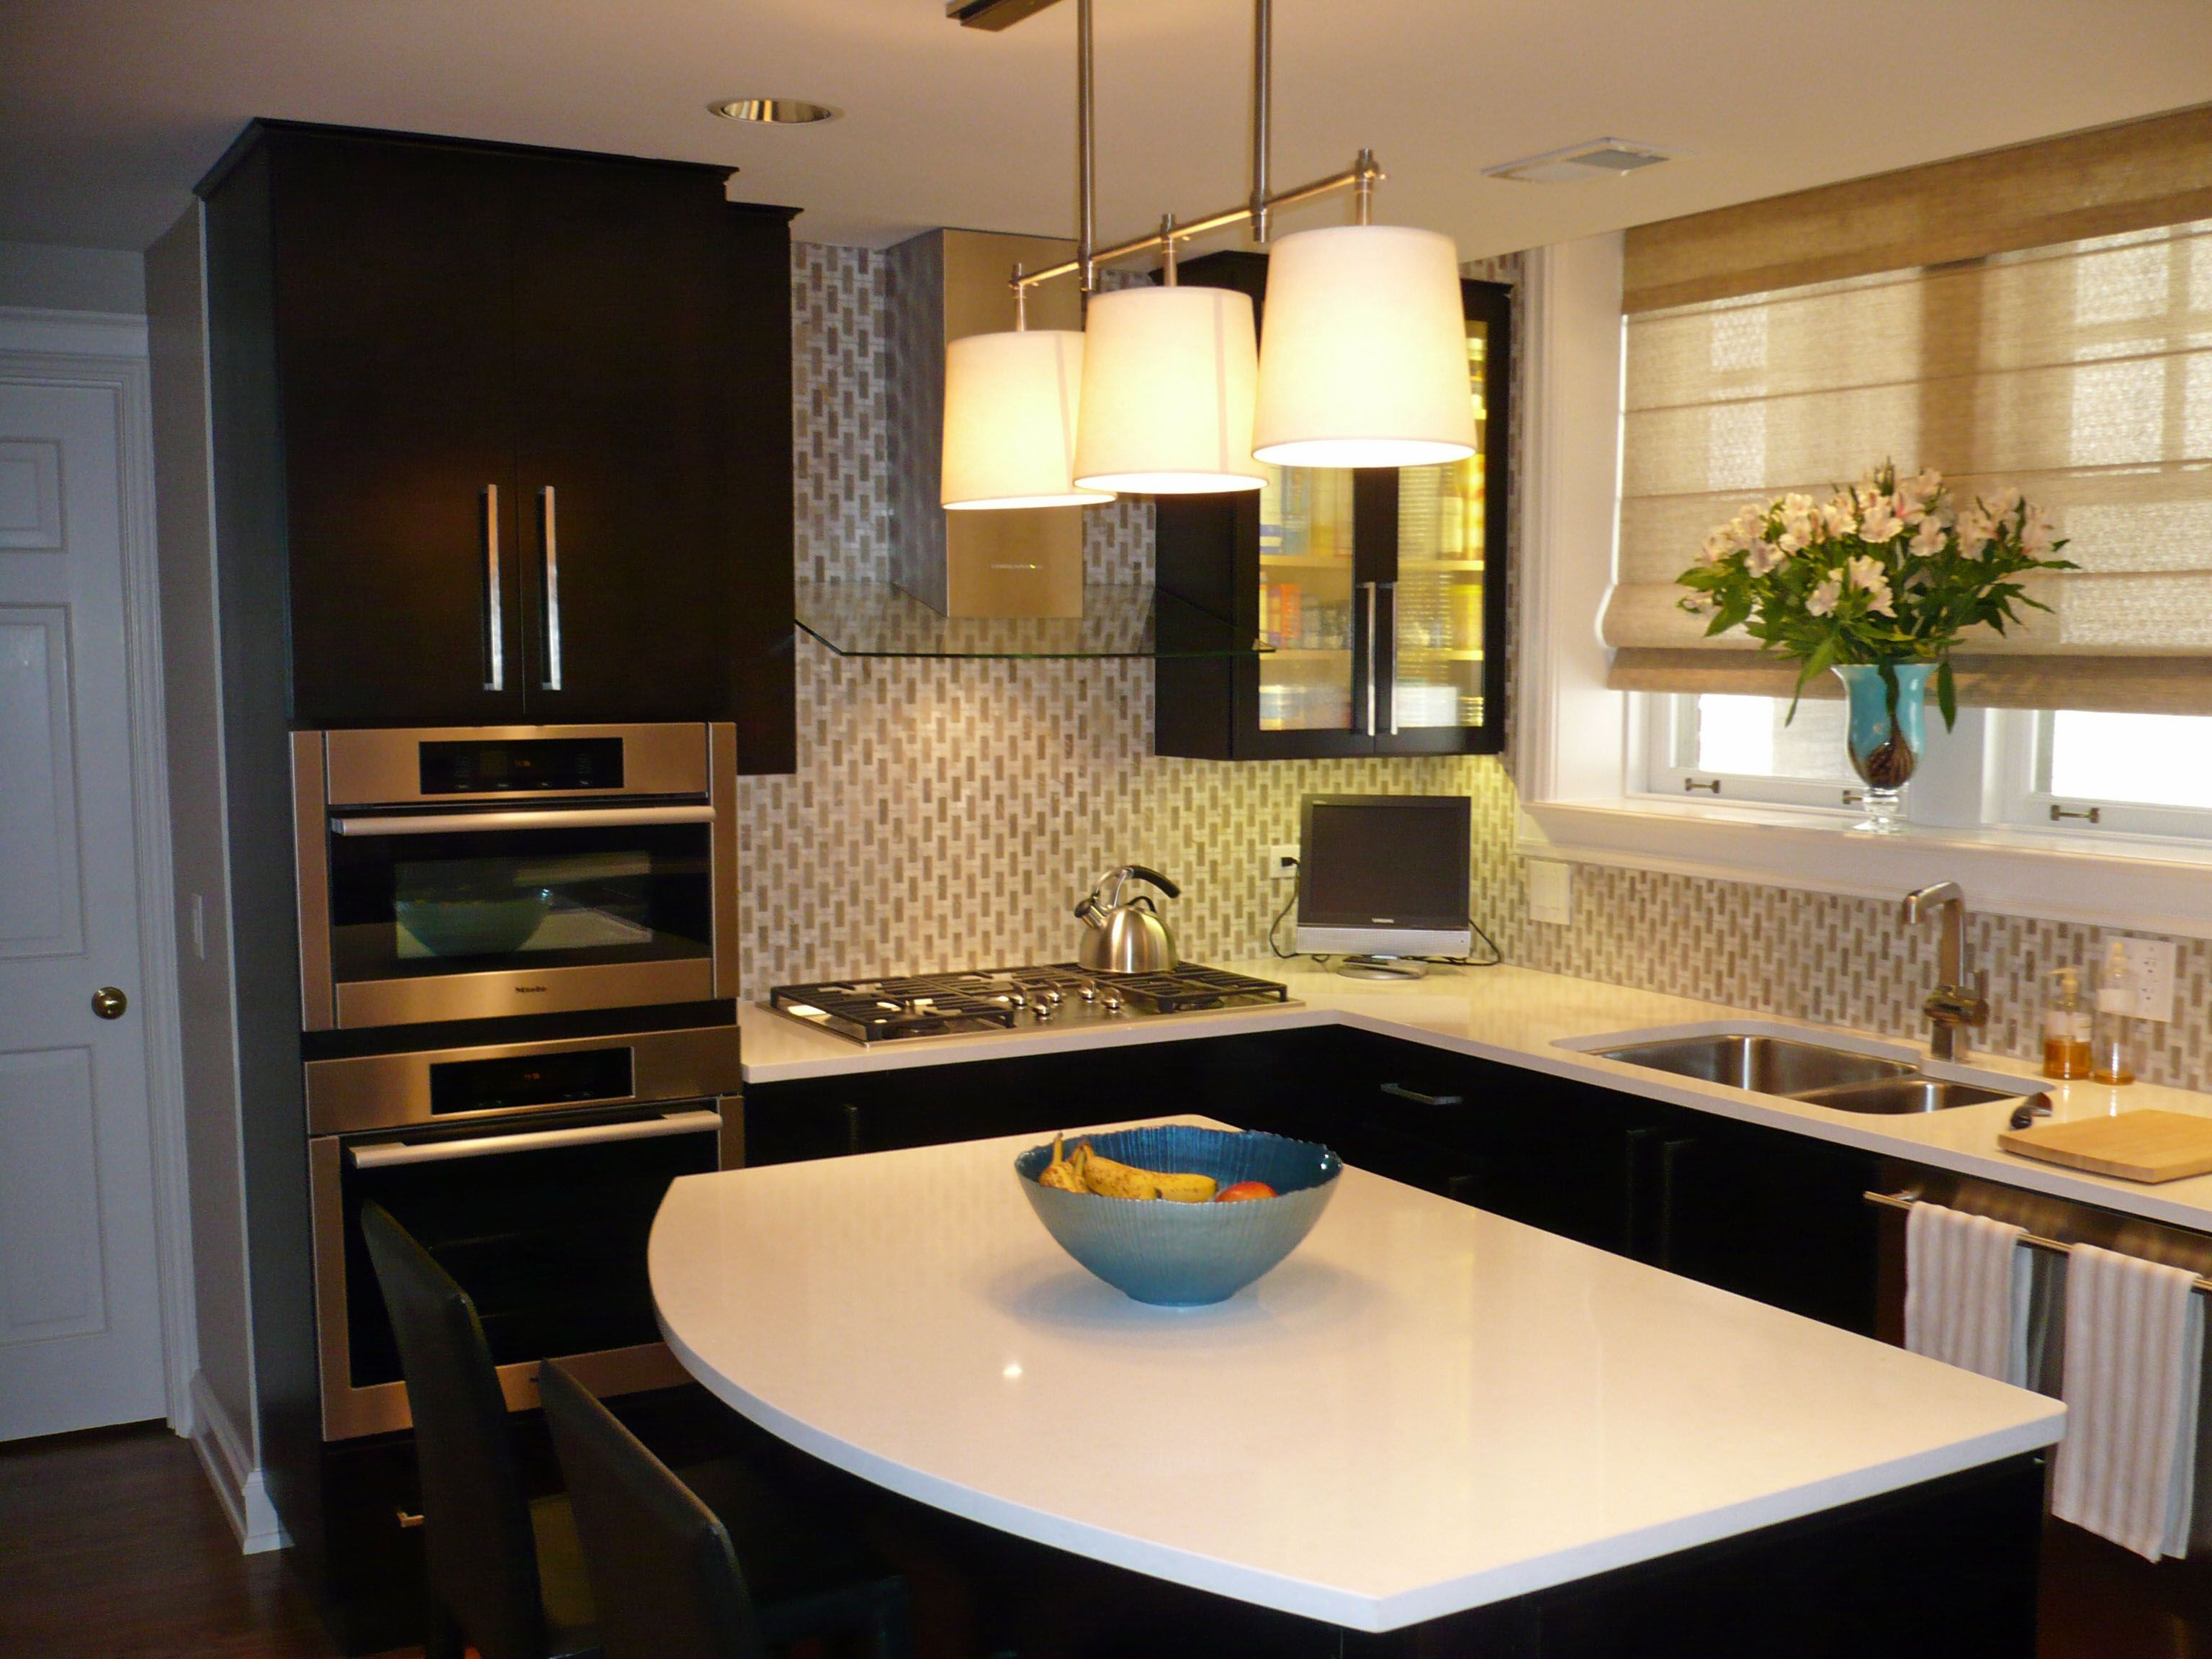 6 Awesome Kitchen Remodel Anchorage Ideas In 2020 Cheap Kitchen Remodel Kitchen Remodel Kitchen Remodel Cost